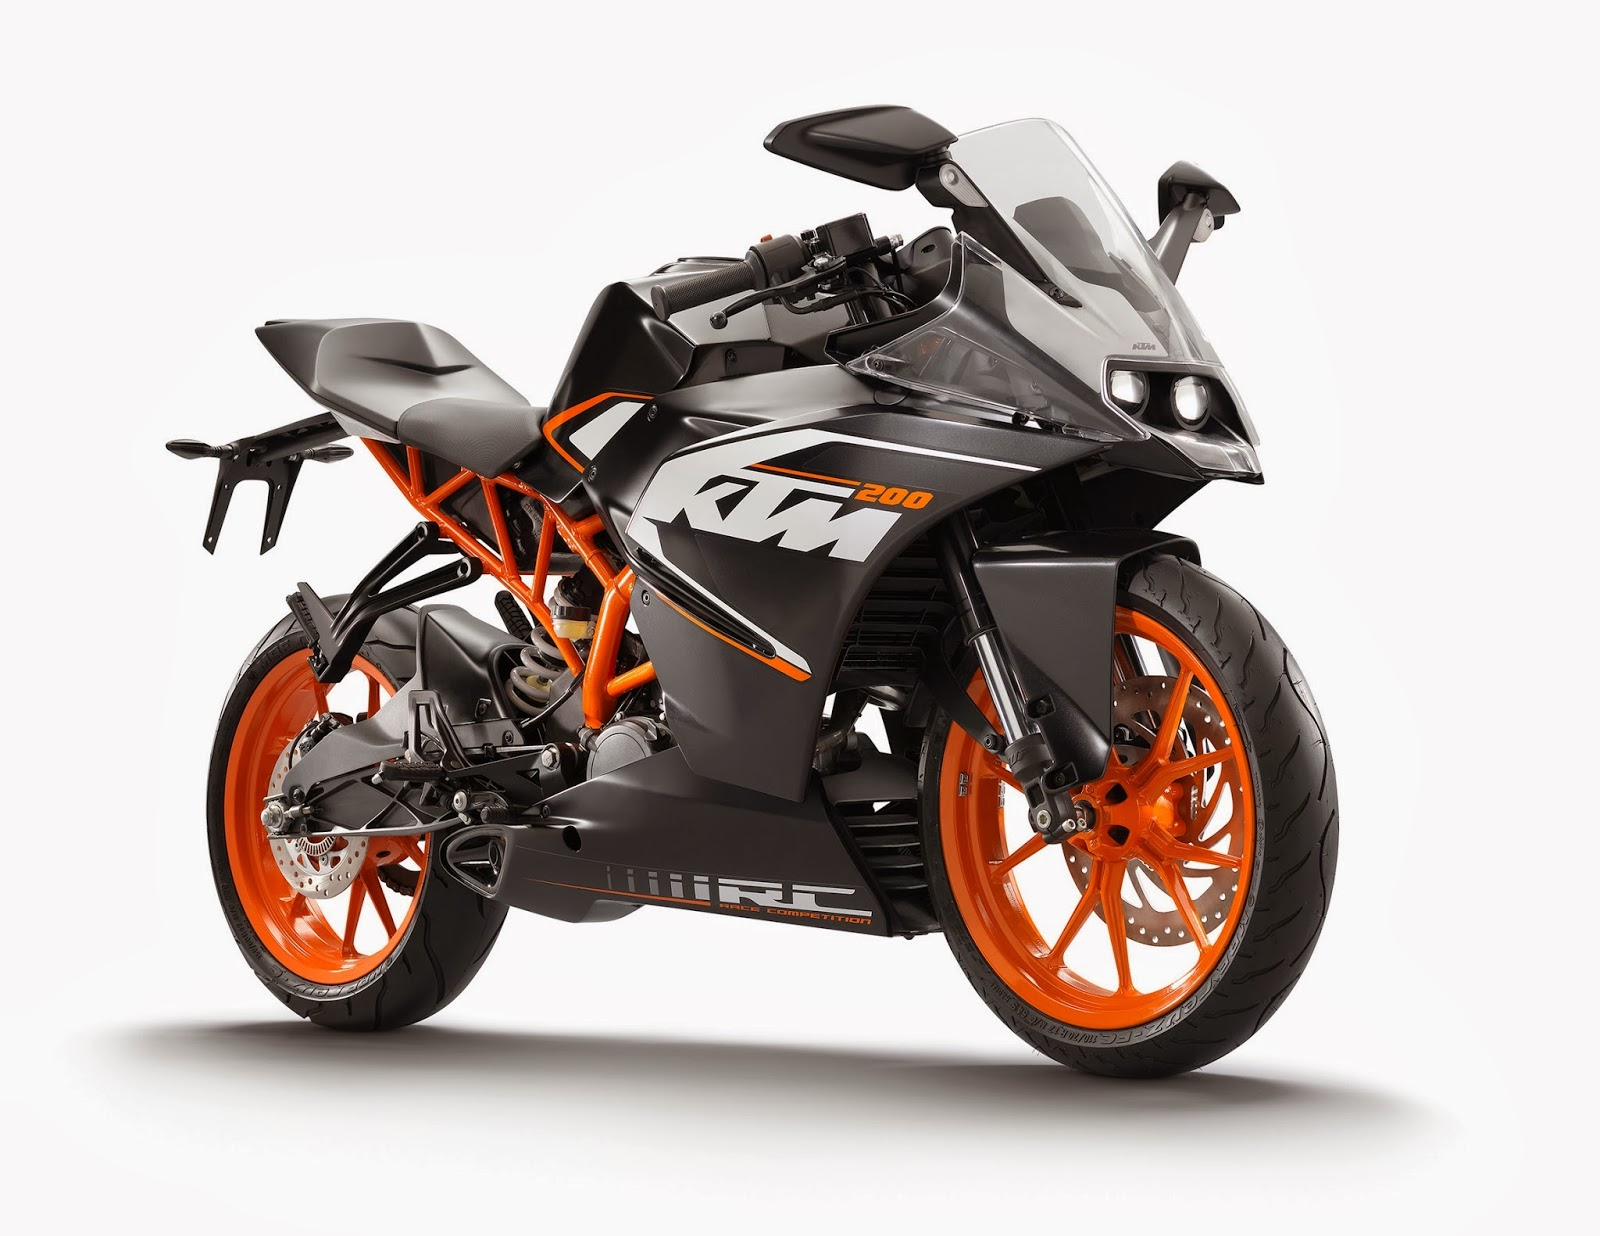 KTM India to launch 4 new bikes [RC200, RC390, 390 Adventure, 1190